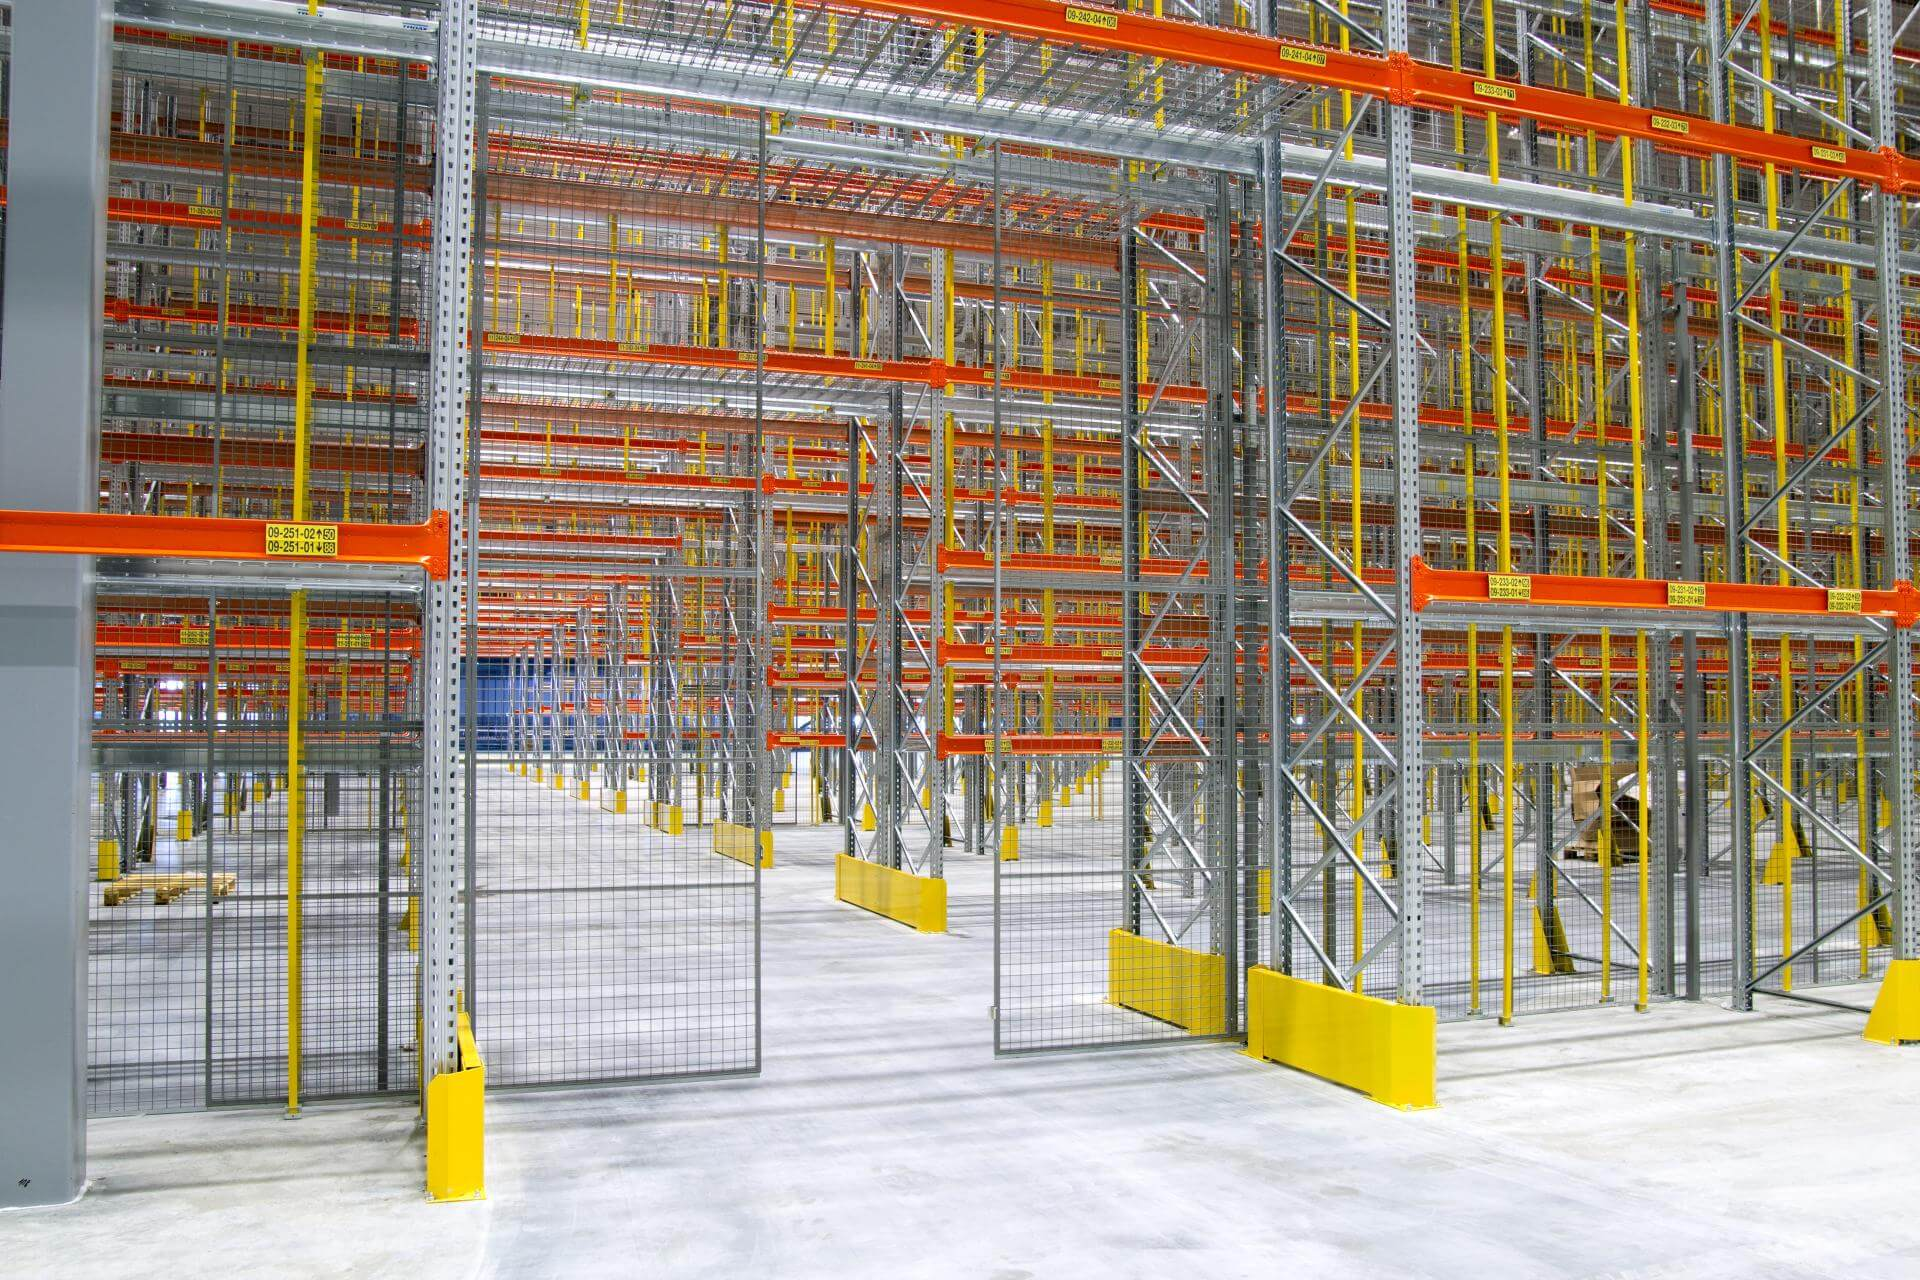 Pallet rack enclosures